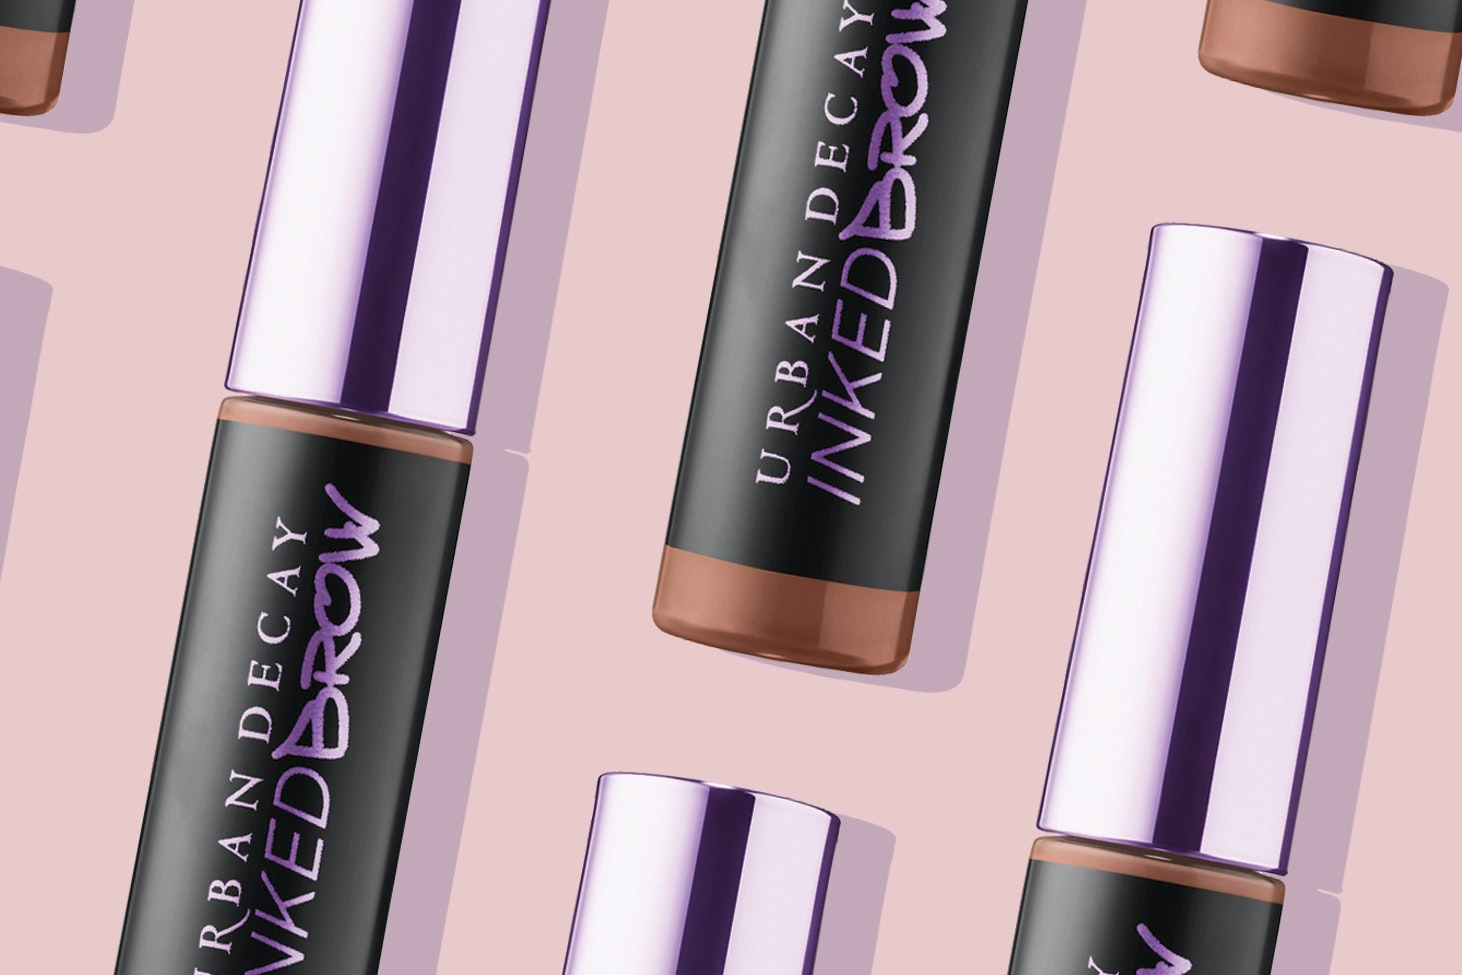 Urban Decay's New Eyebrow Gel Is The 1 Beauty Product Making Me Feel Like I Have My Life Together